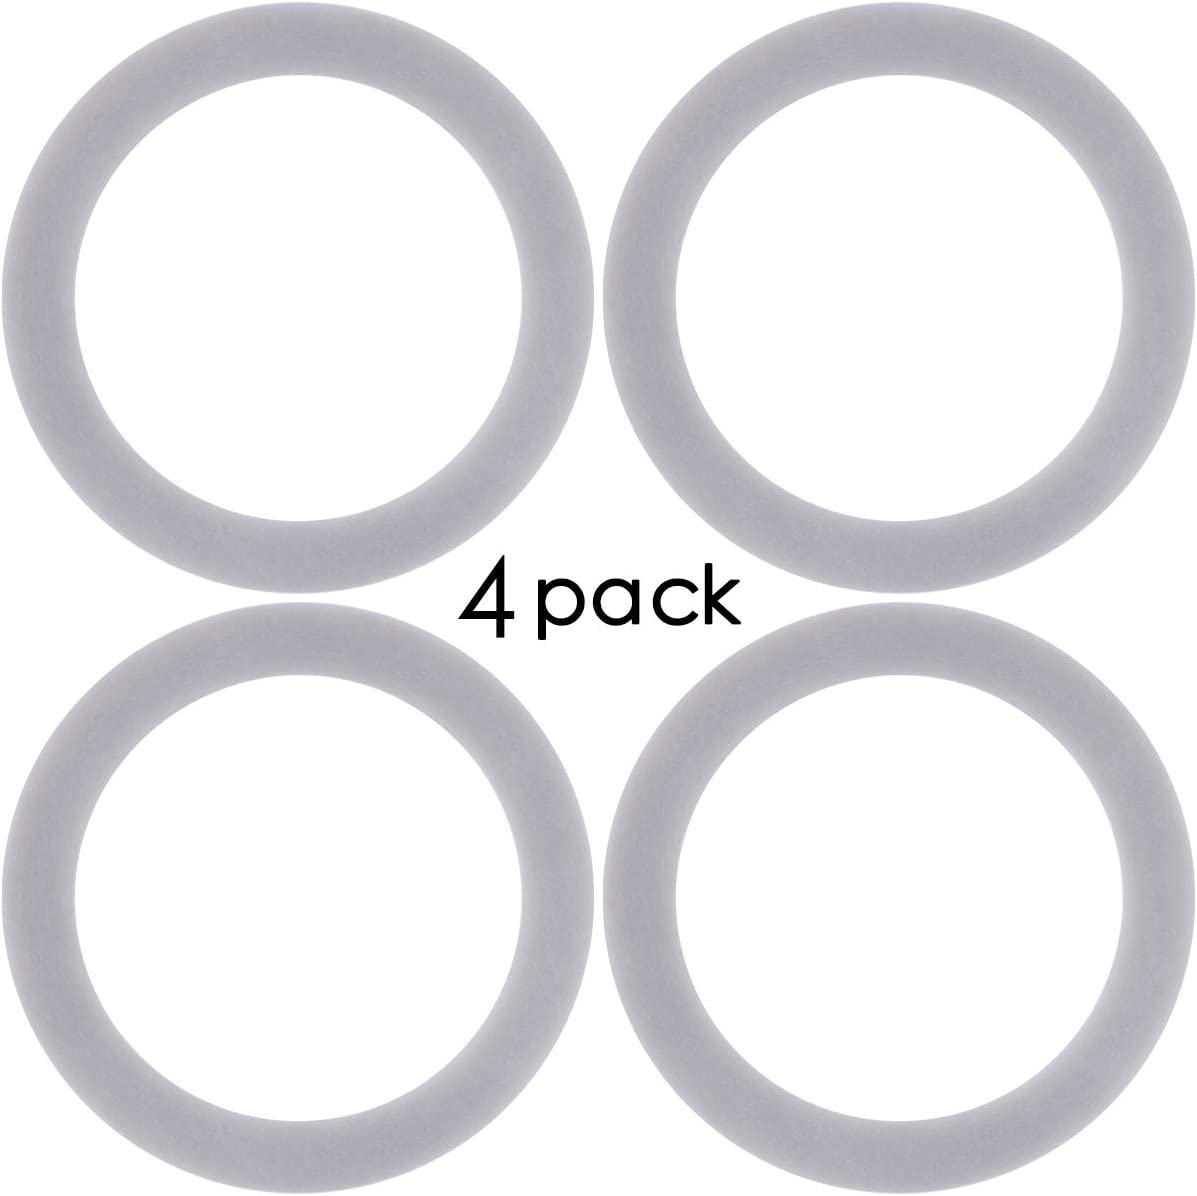 O-Ring Rubber Gasket Seal for Oster and Osterizer Blenders, O Ring Seal Gasket by Aooba